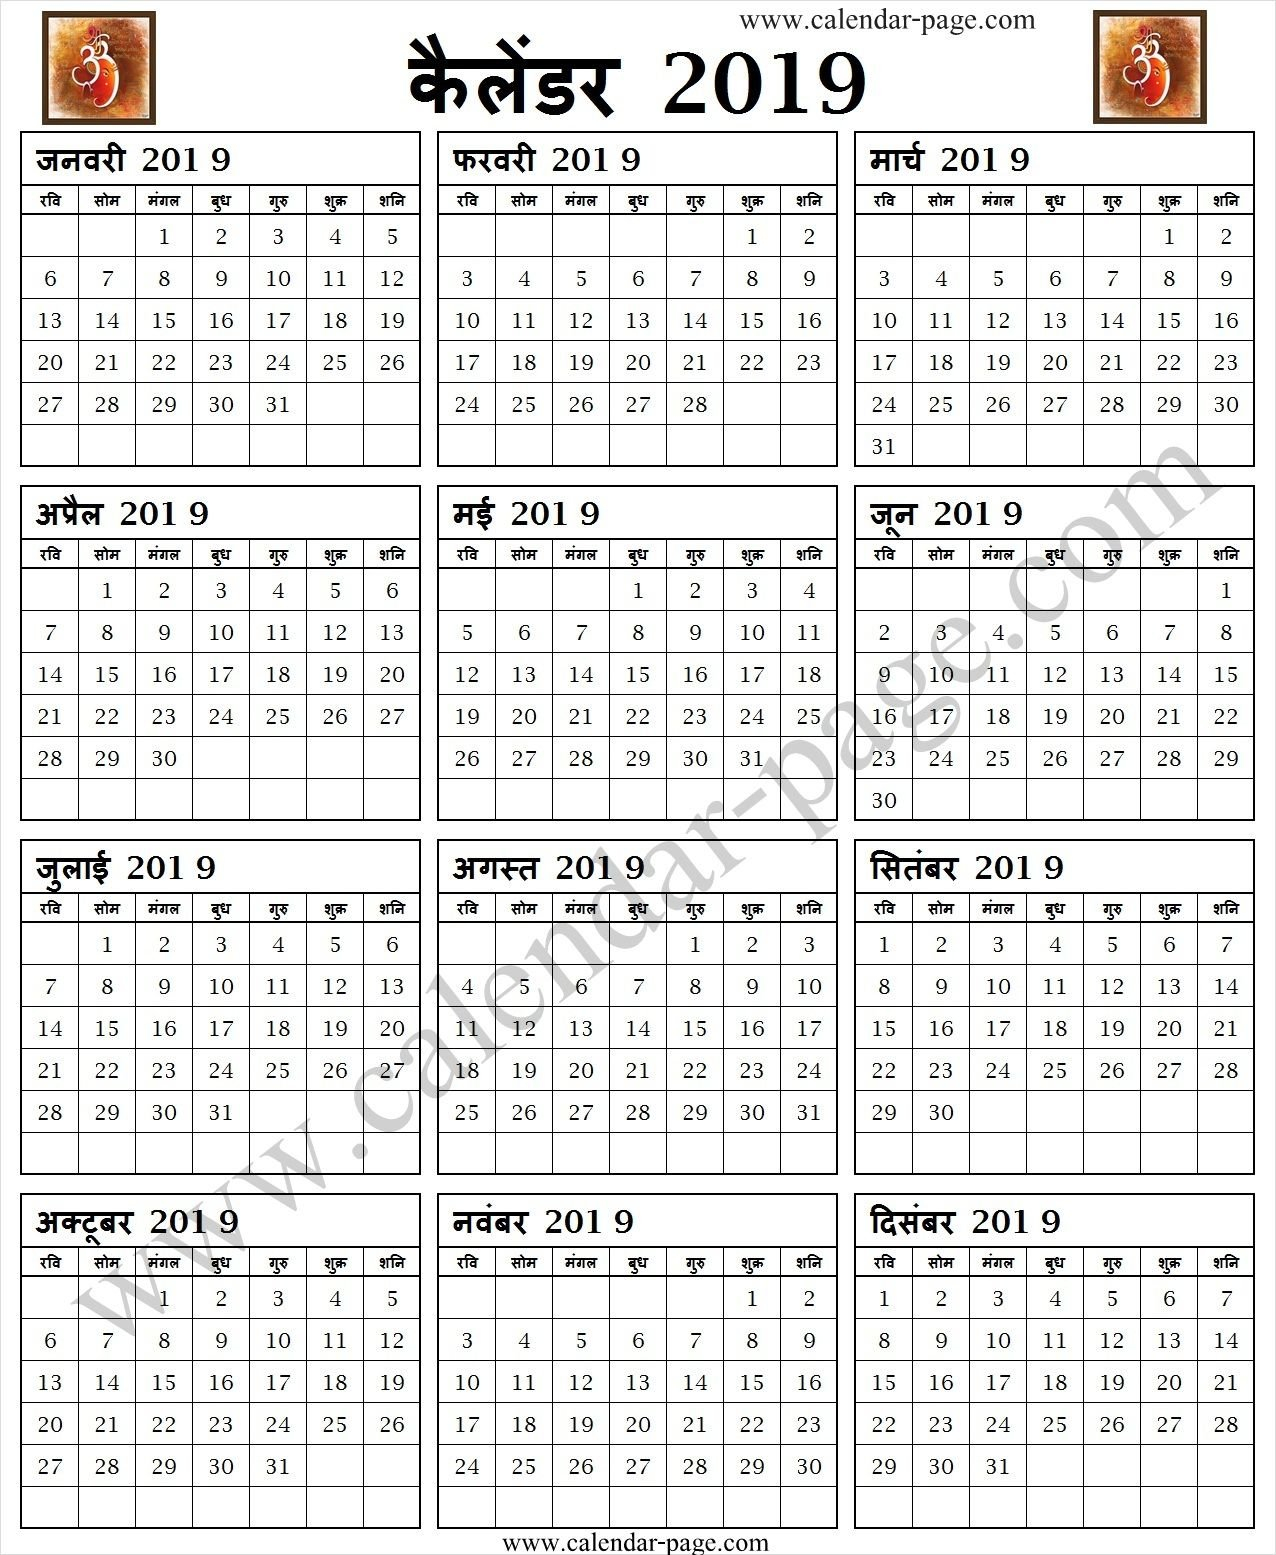 2019 Hindu Calendar In Hindi | 2019 Free Calendar To Print | 2019 Calendar 2019 Hindu